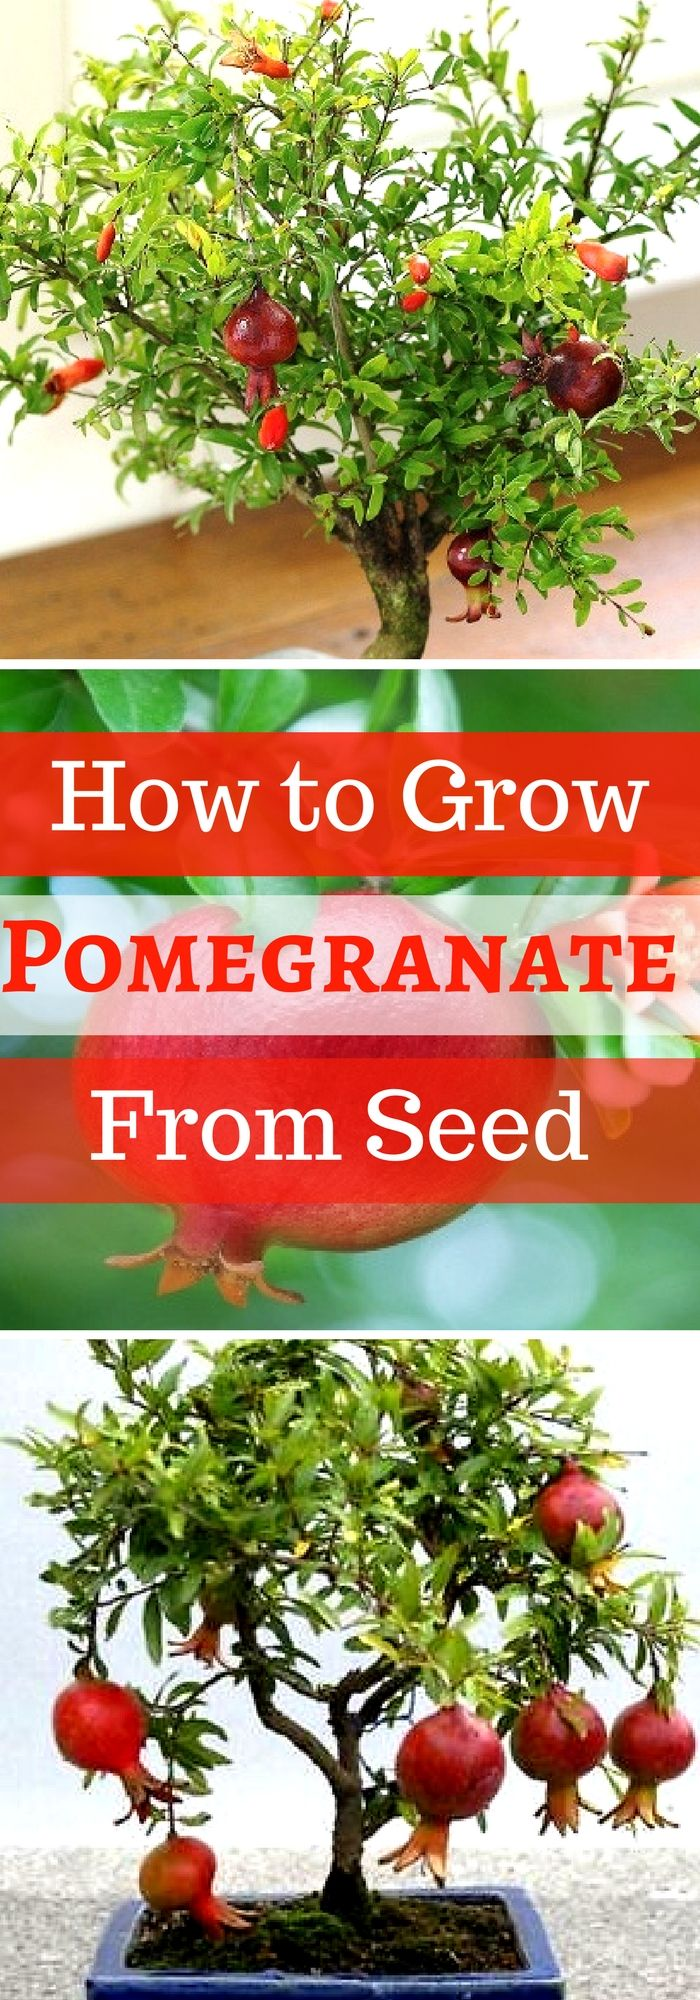 Step by Step Procedure for Growing Pomegranate Plant from